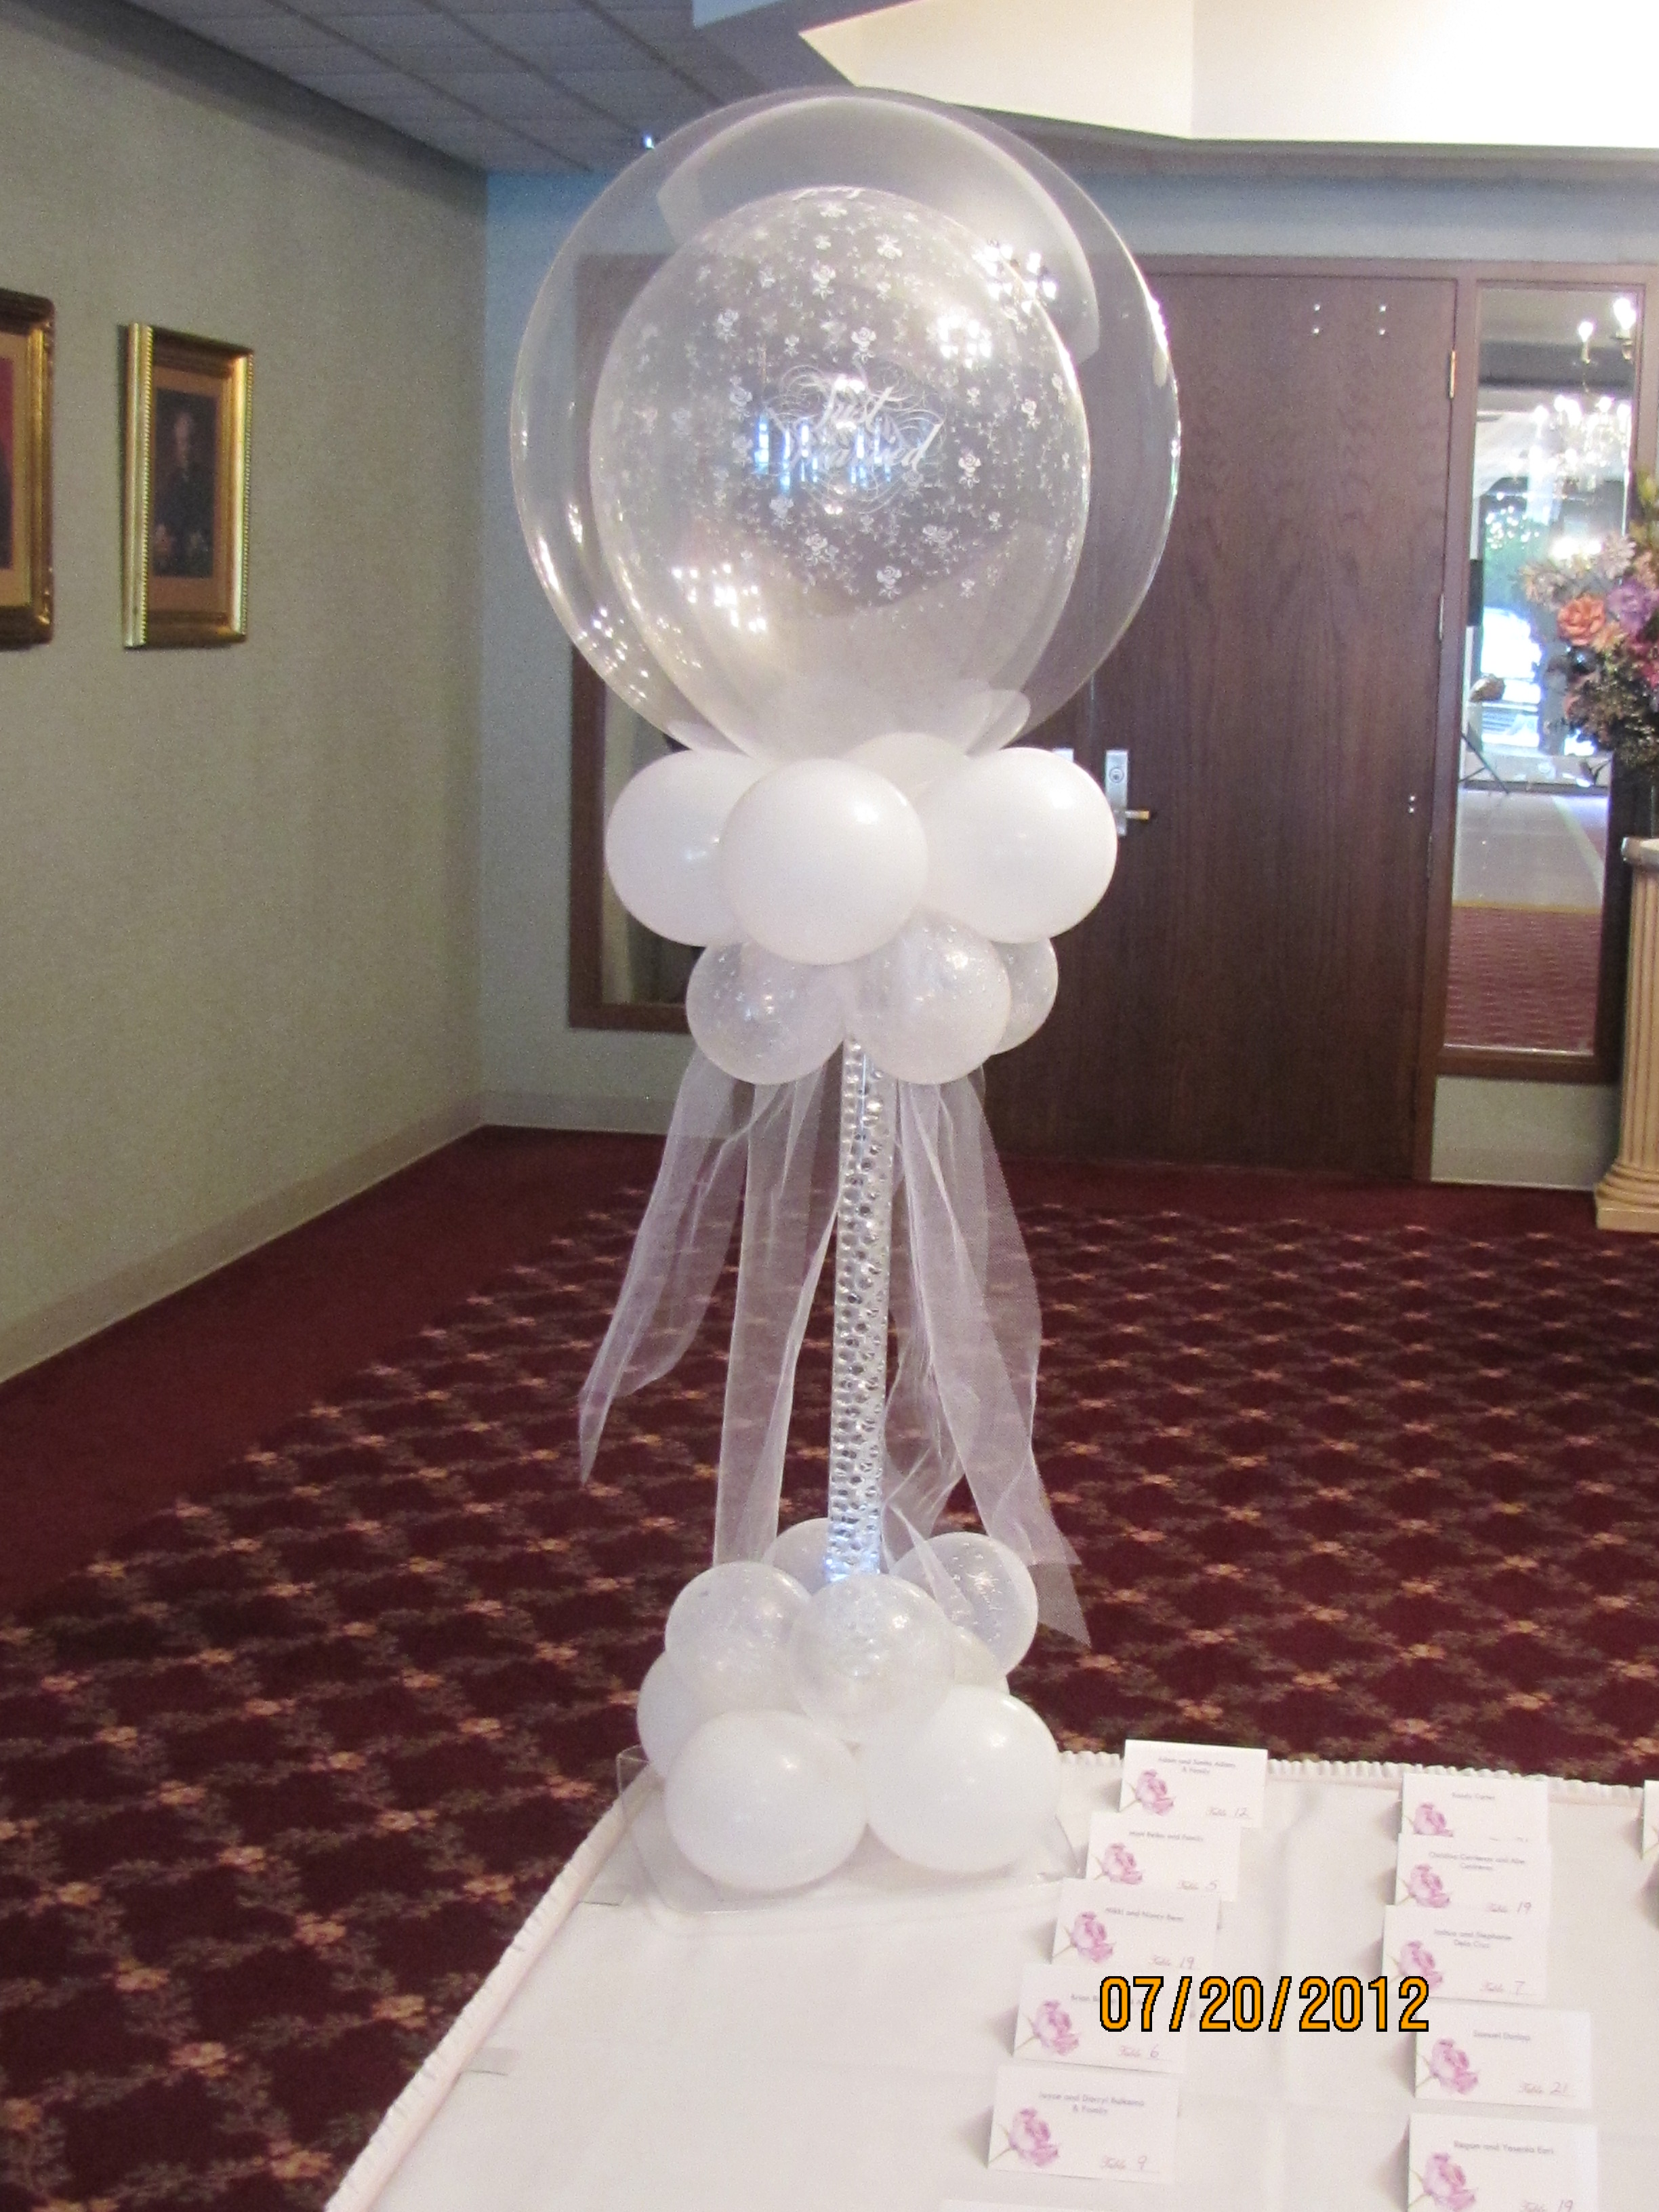 Wedding balloon decor amytheballoonlady for Balloon decoration ideas for weddings